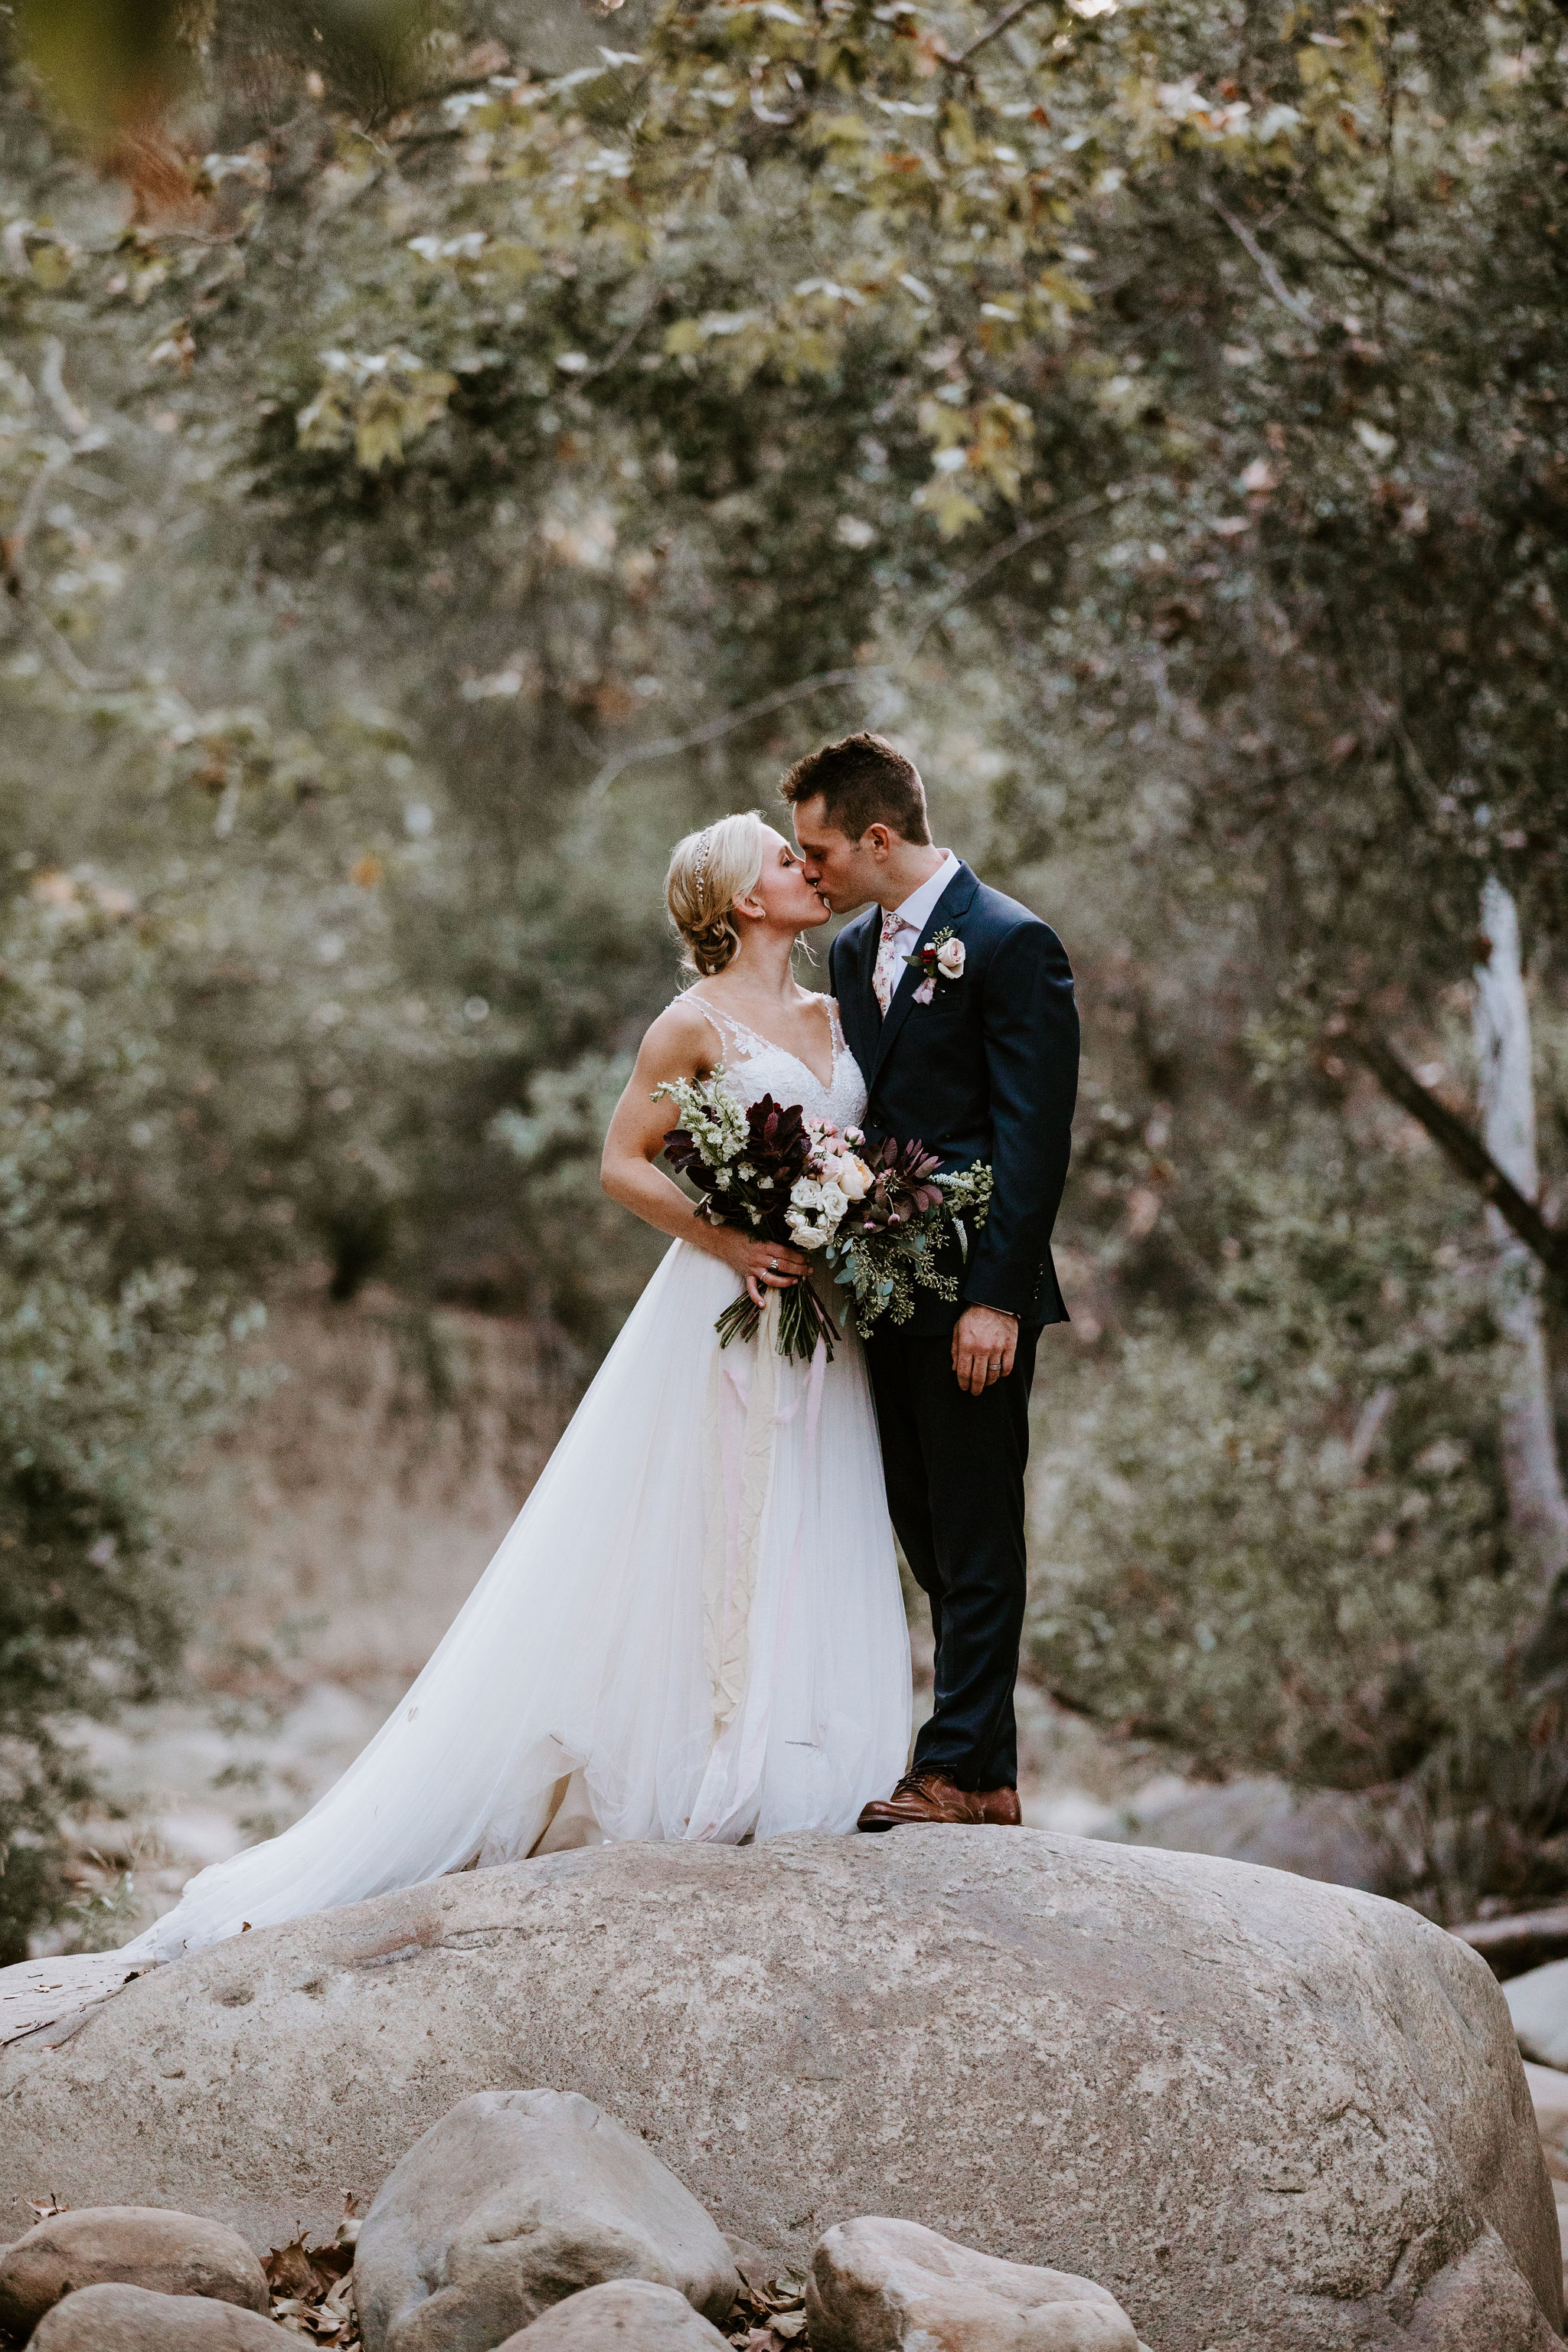 www.santabarbarawedding.com | Geoff and Lyndsi Photography | Santa Barbara Museum of Natural History | Jamie Mangone of LuJane Events | Topa Flora | Bride and Groom Share a Kiss